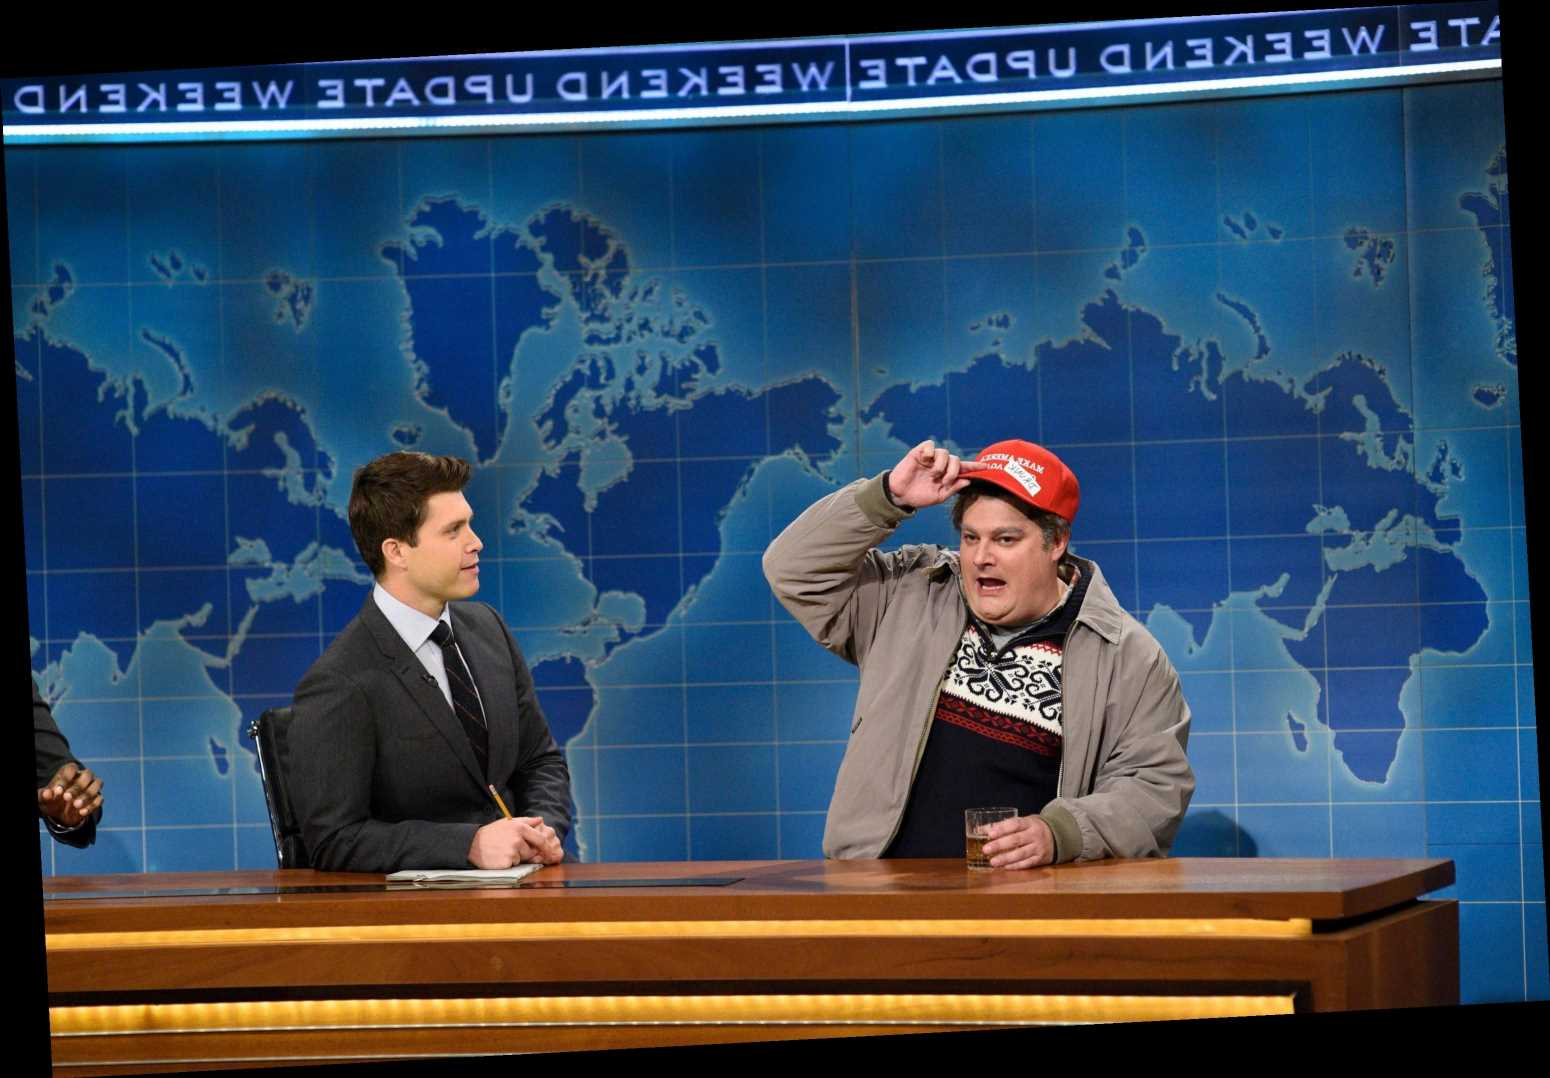 'Dumb Idiot' Trump Apparently Loved Praise From Racist 'SNL' Character